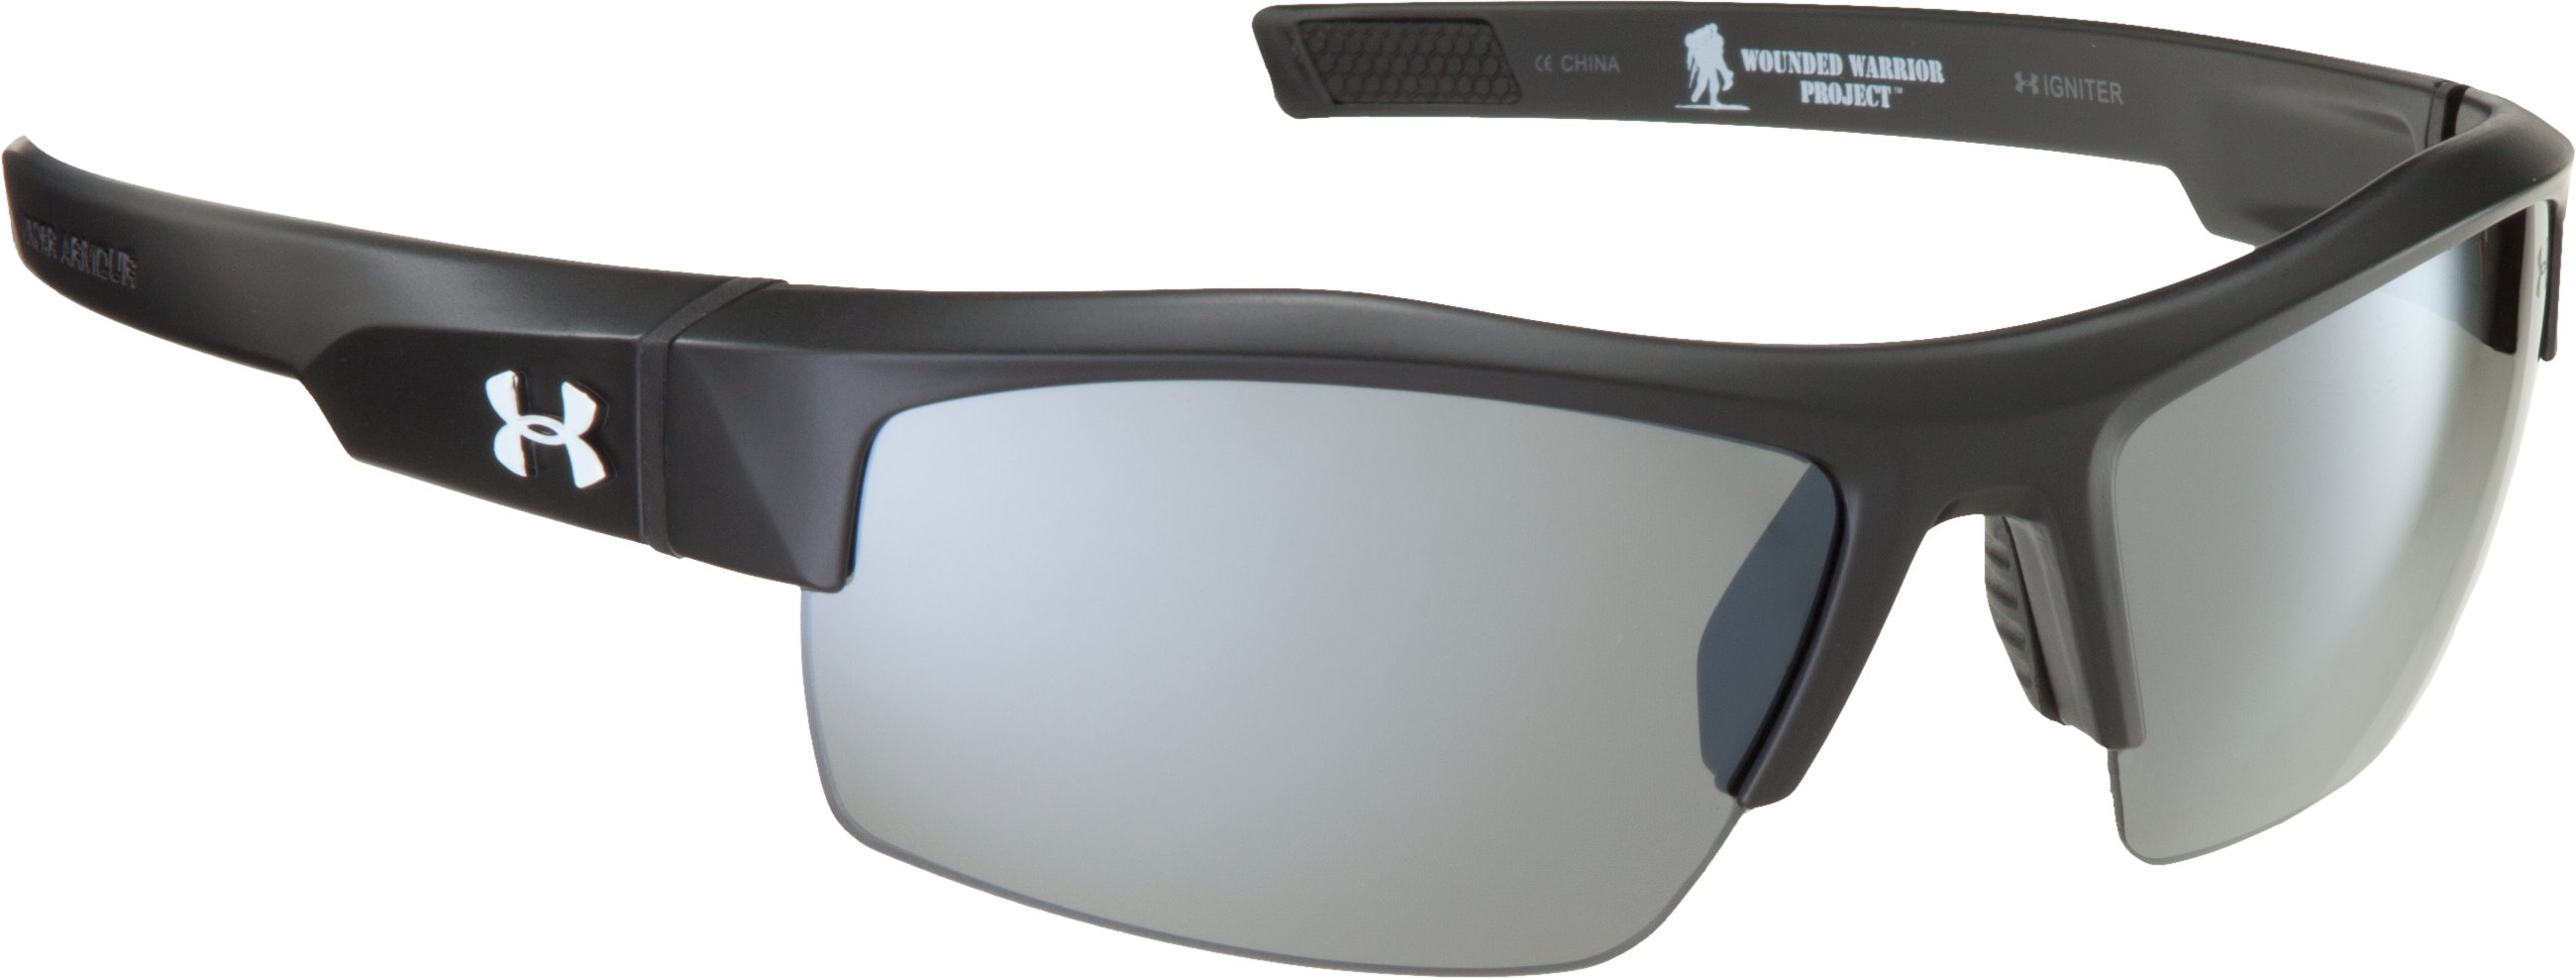 WWP UA Igniter Sunglasses, Satin Black